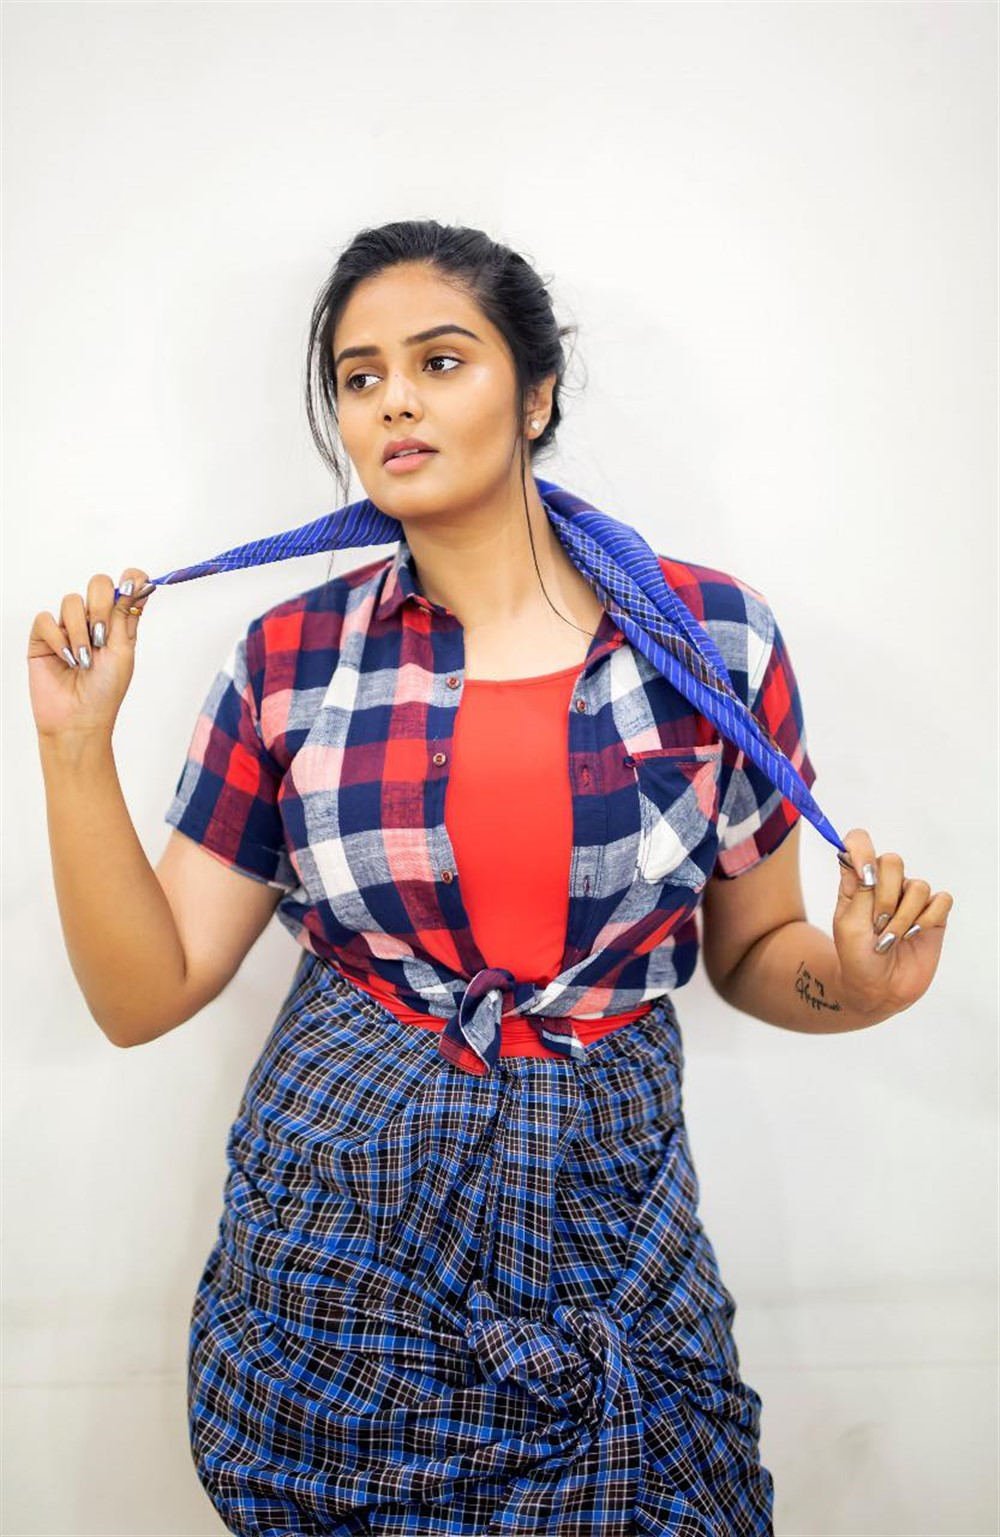 anchor-sreemukhi-recent-photoshoot-pics-00e2a5d